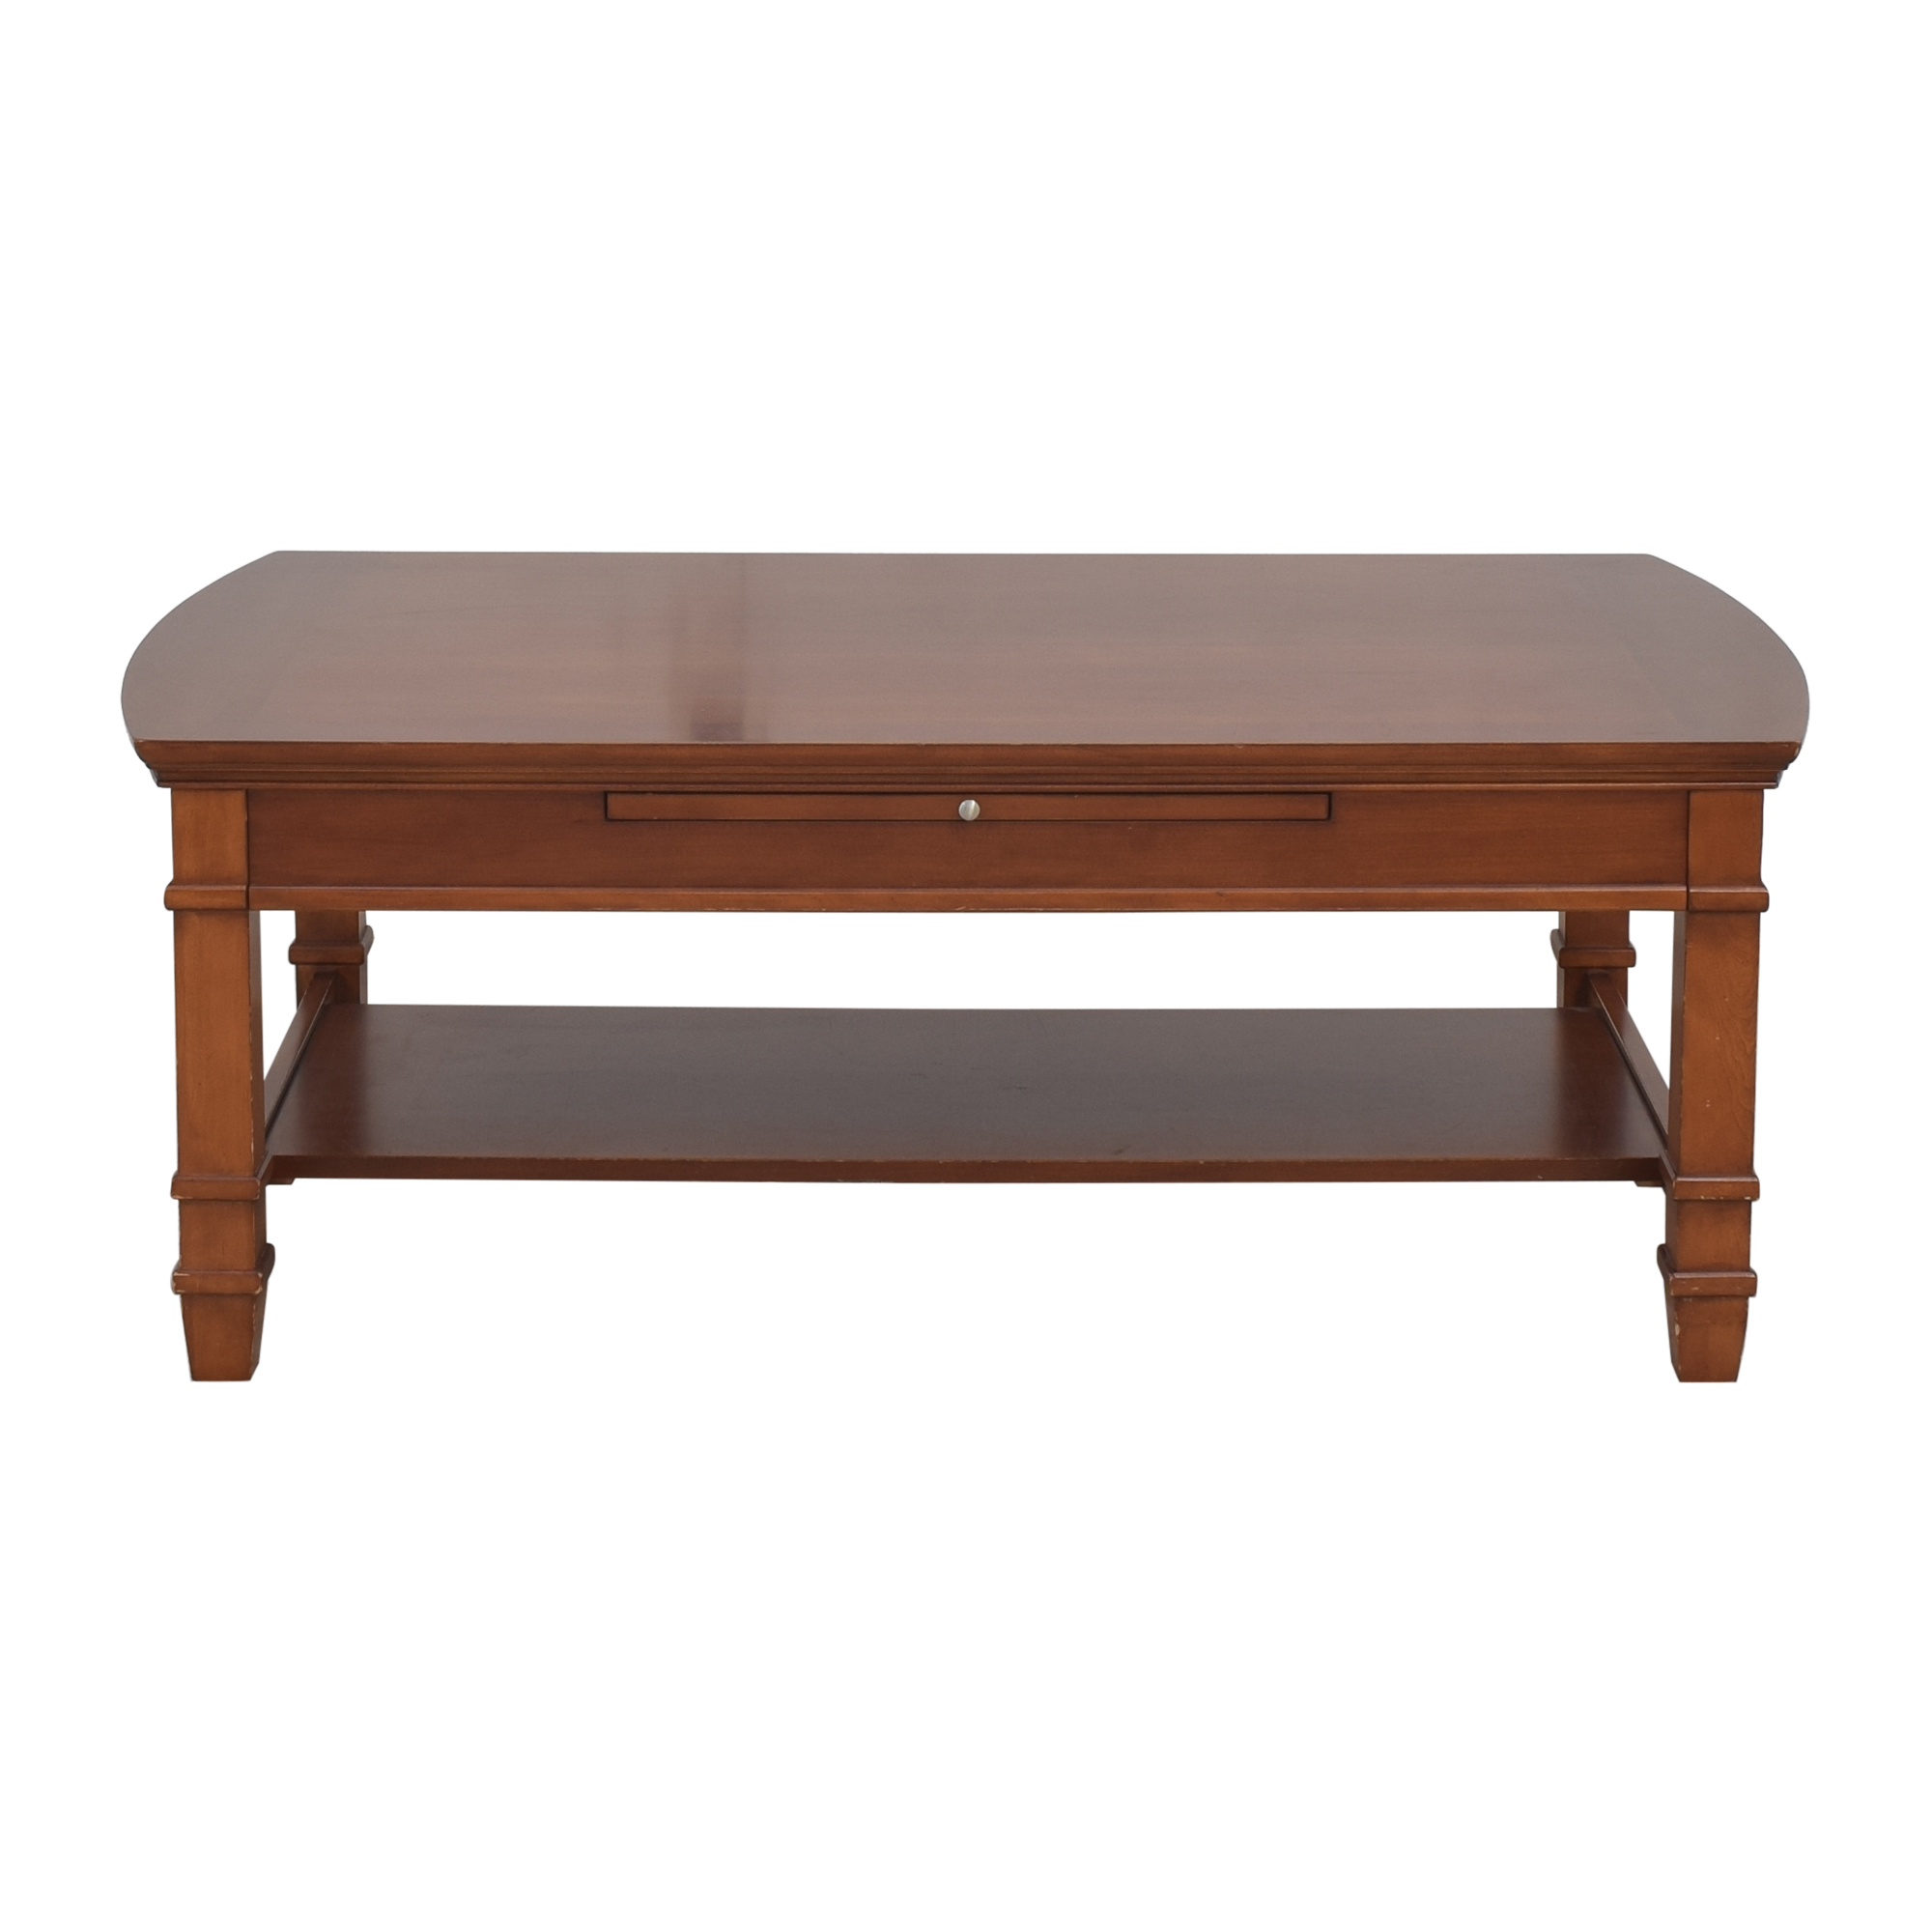 shop Thomasville Bridges 2.0 Rectangular Coffee Table with Extension Thomasville Tables